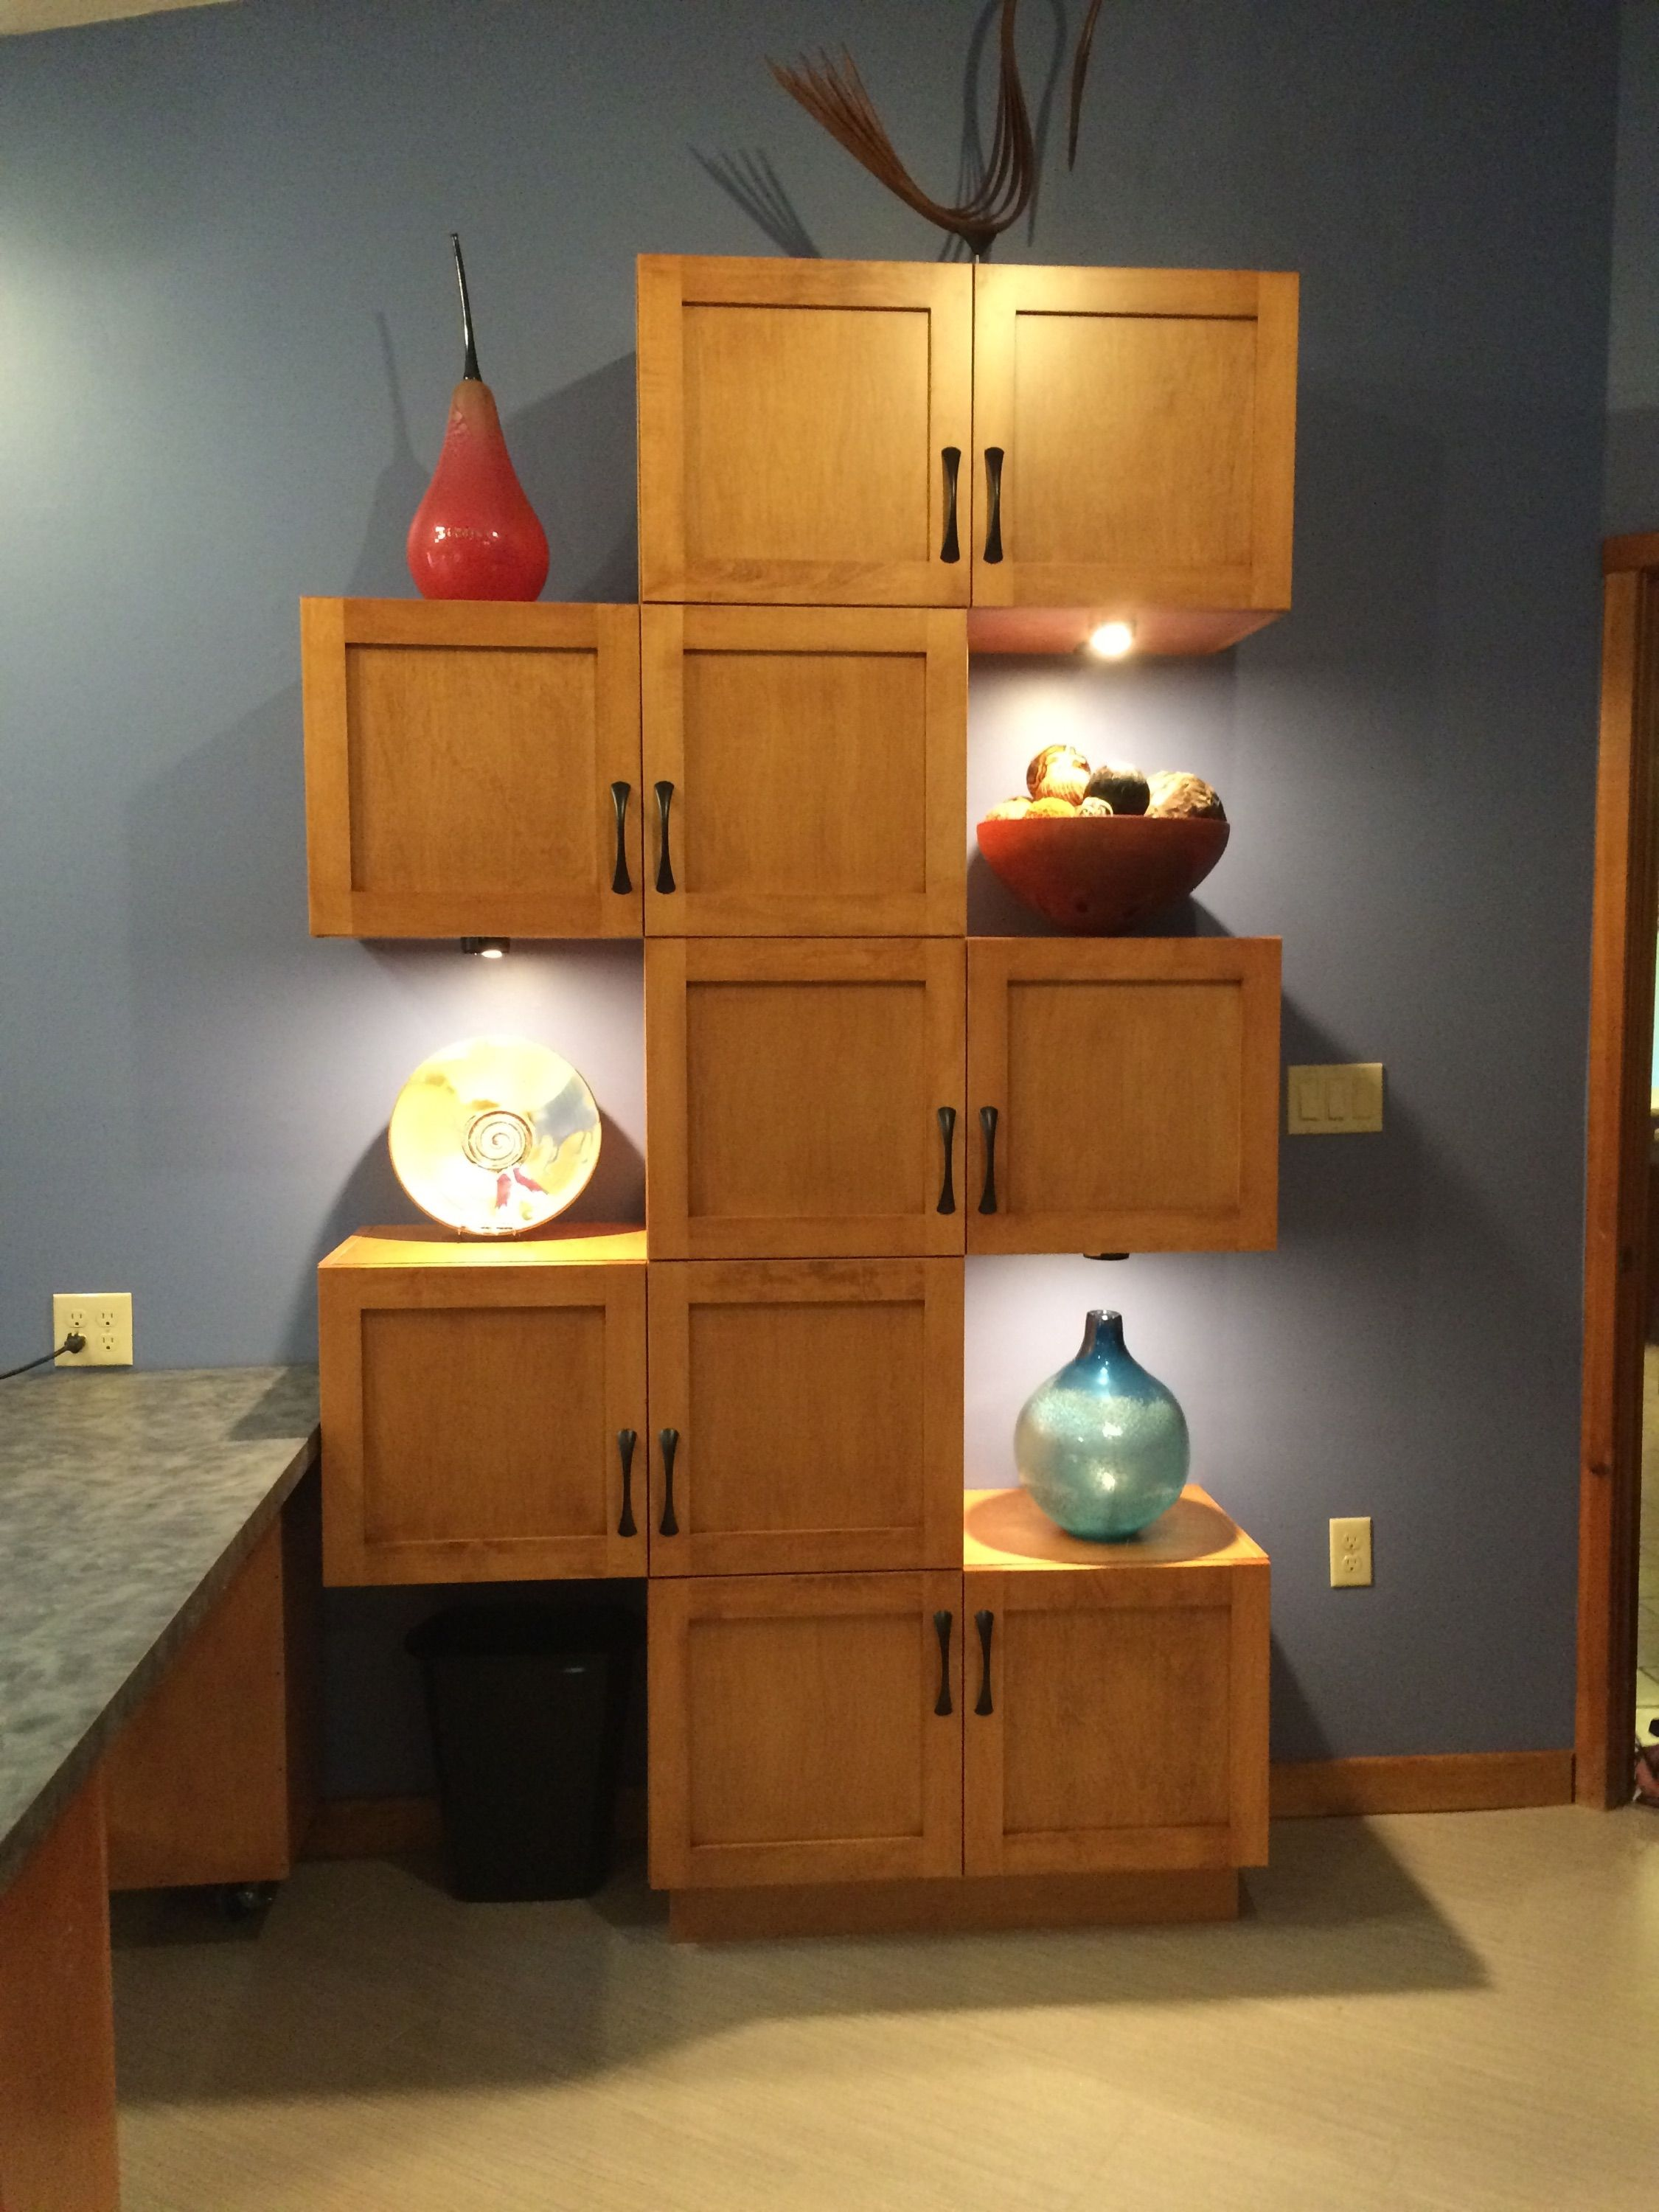 stacking wall cabinets makes an impressive display area ...